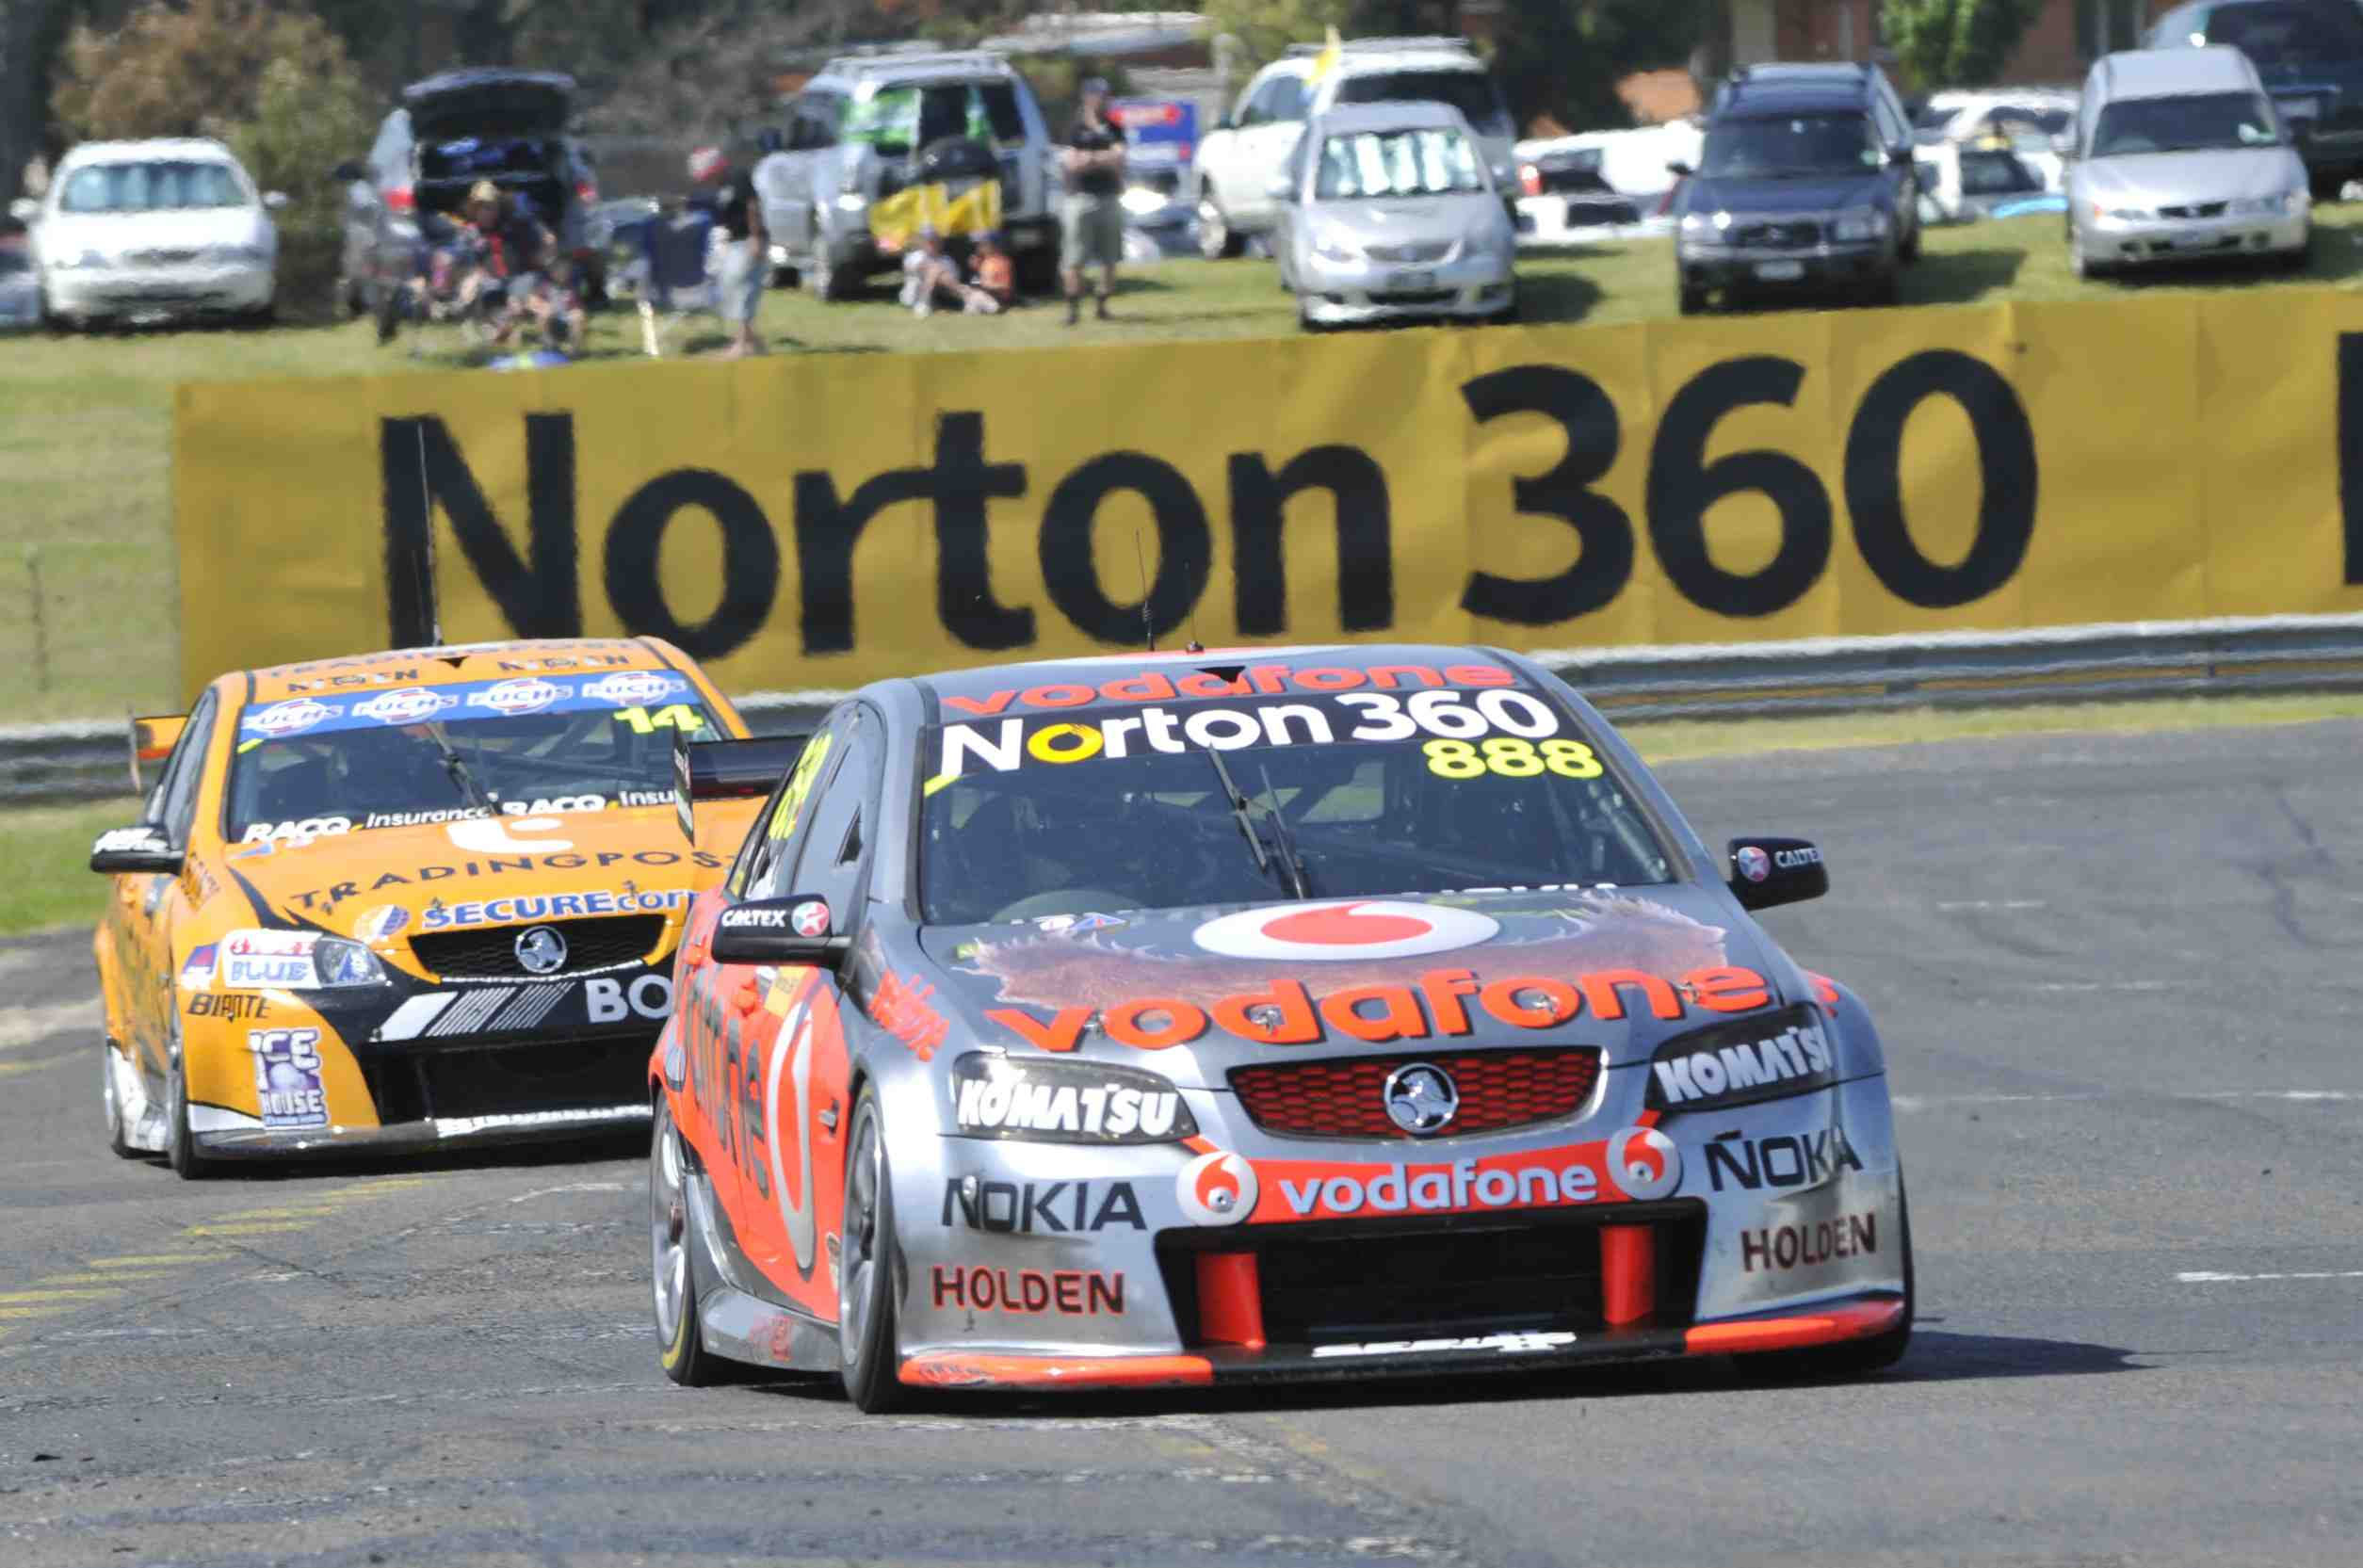 Tickets on sale for Norton 360 Challenge